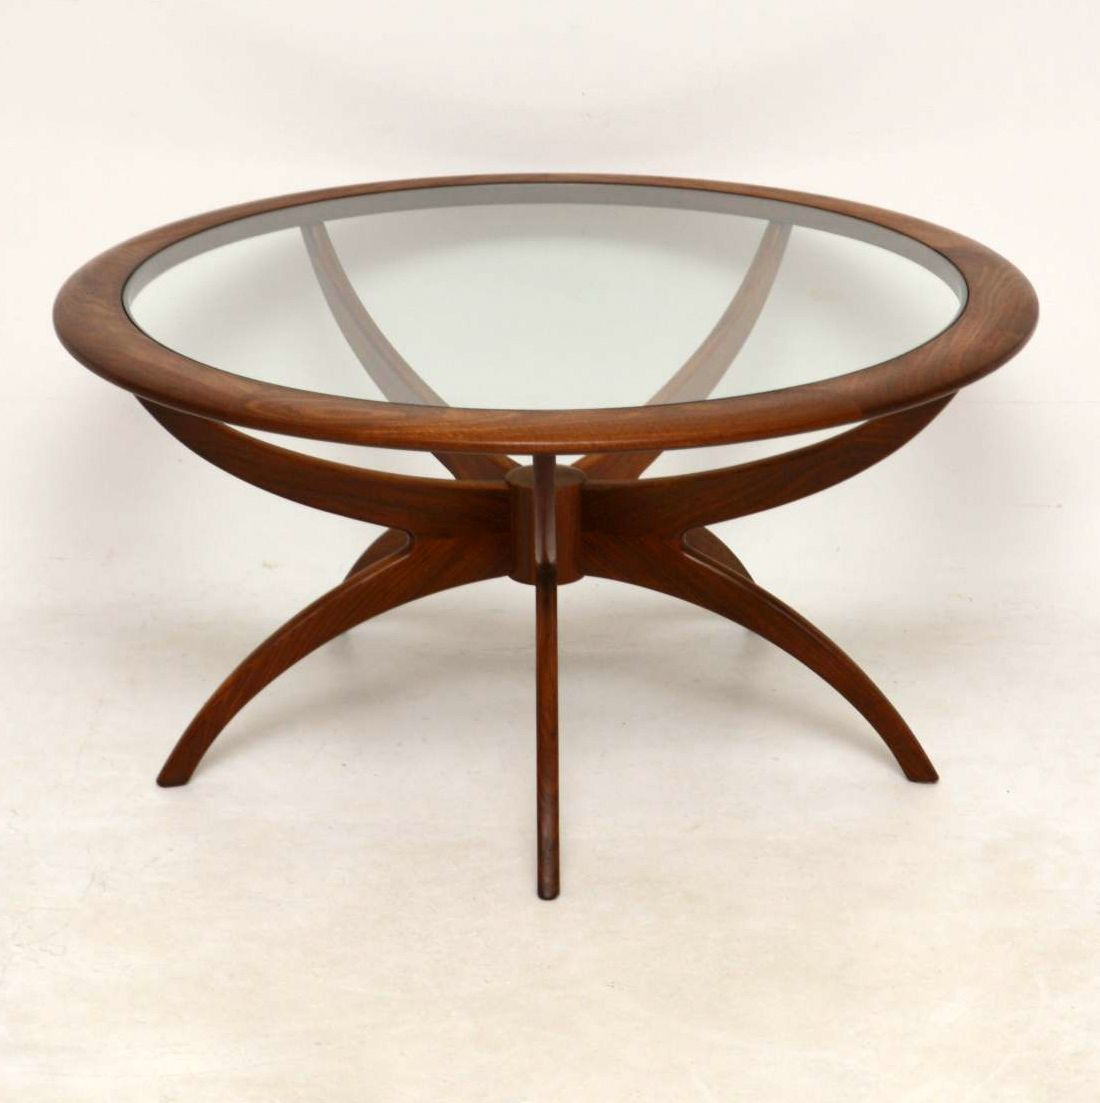 1960 S Vintage Teak Spider Coffee Table By G Plan